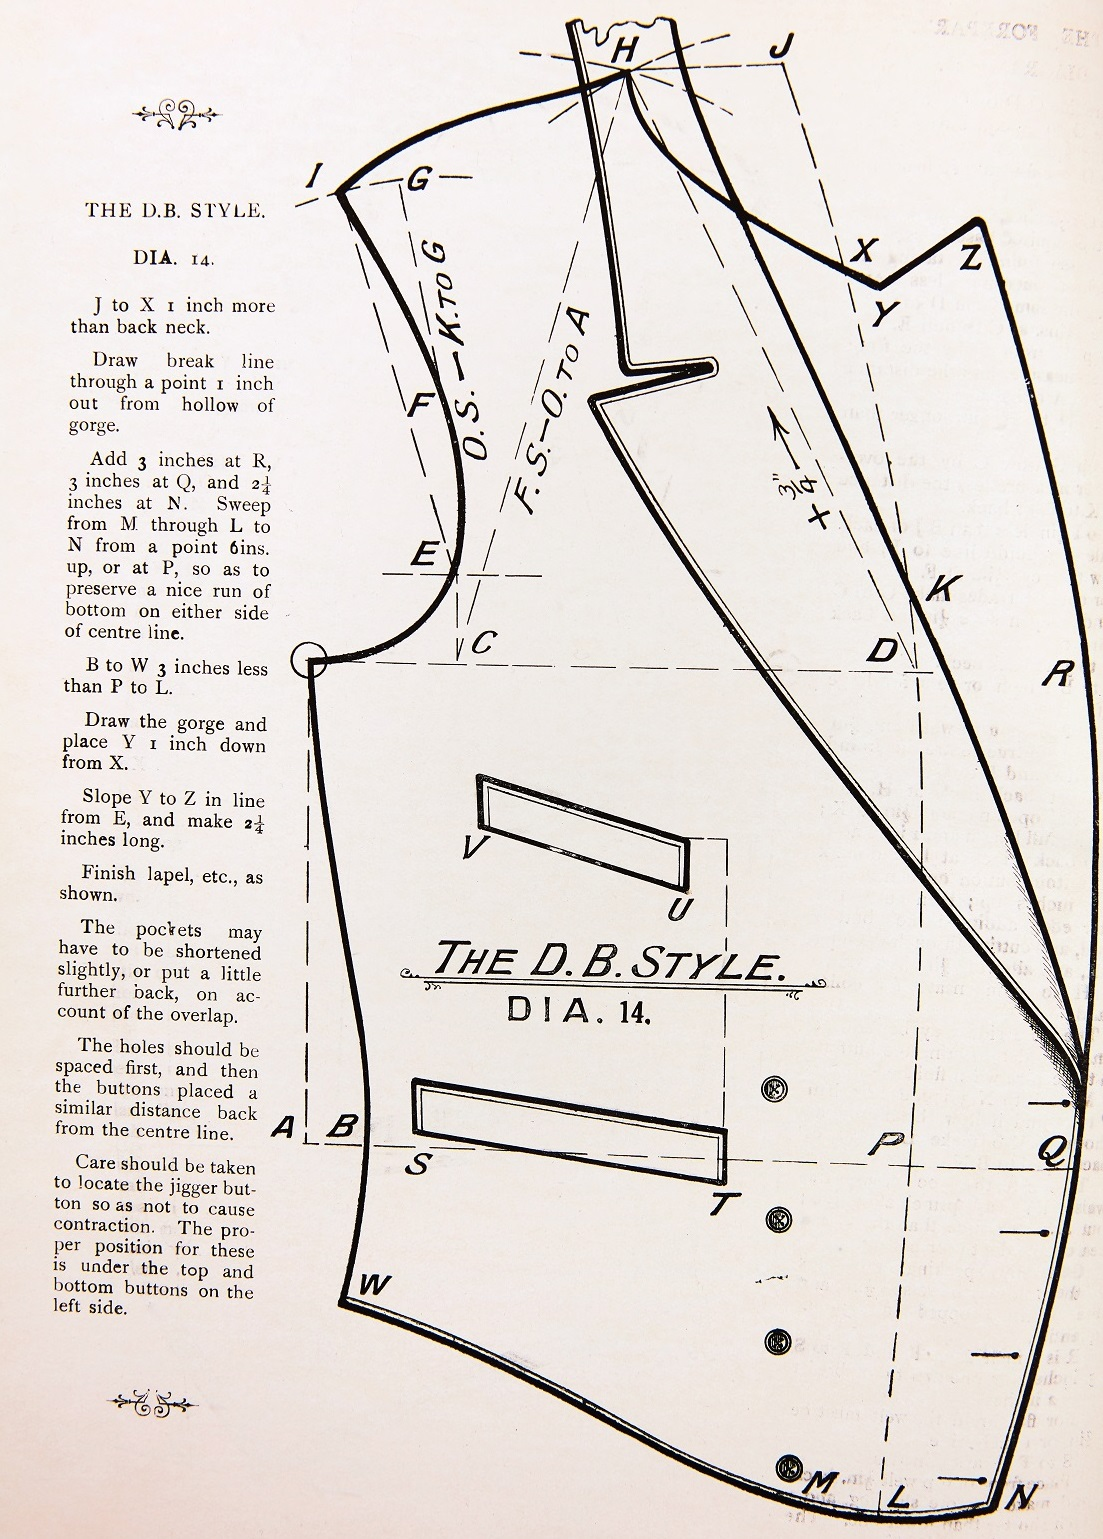 double breasted waistcoat tailoring pattern.jpg